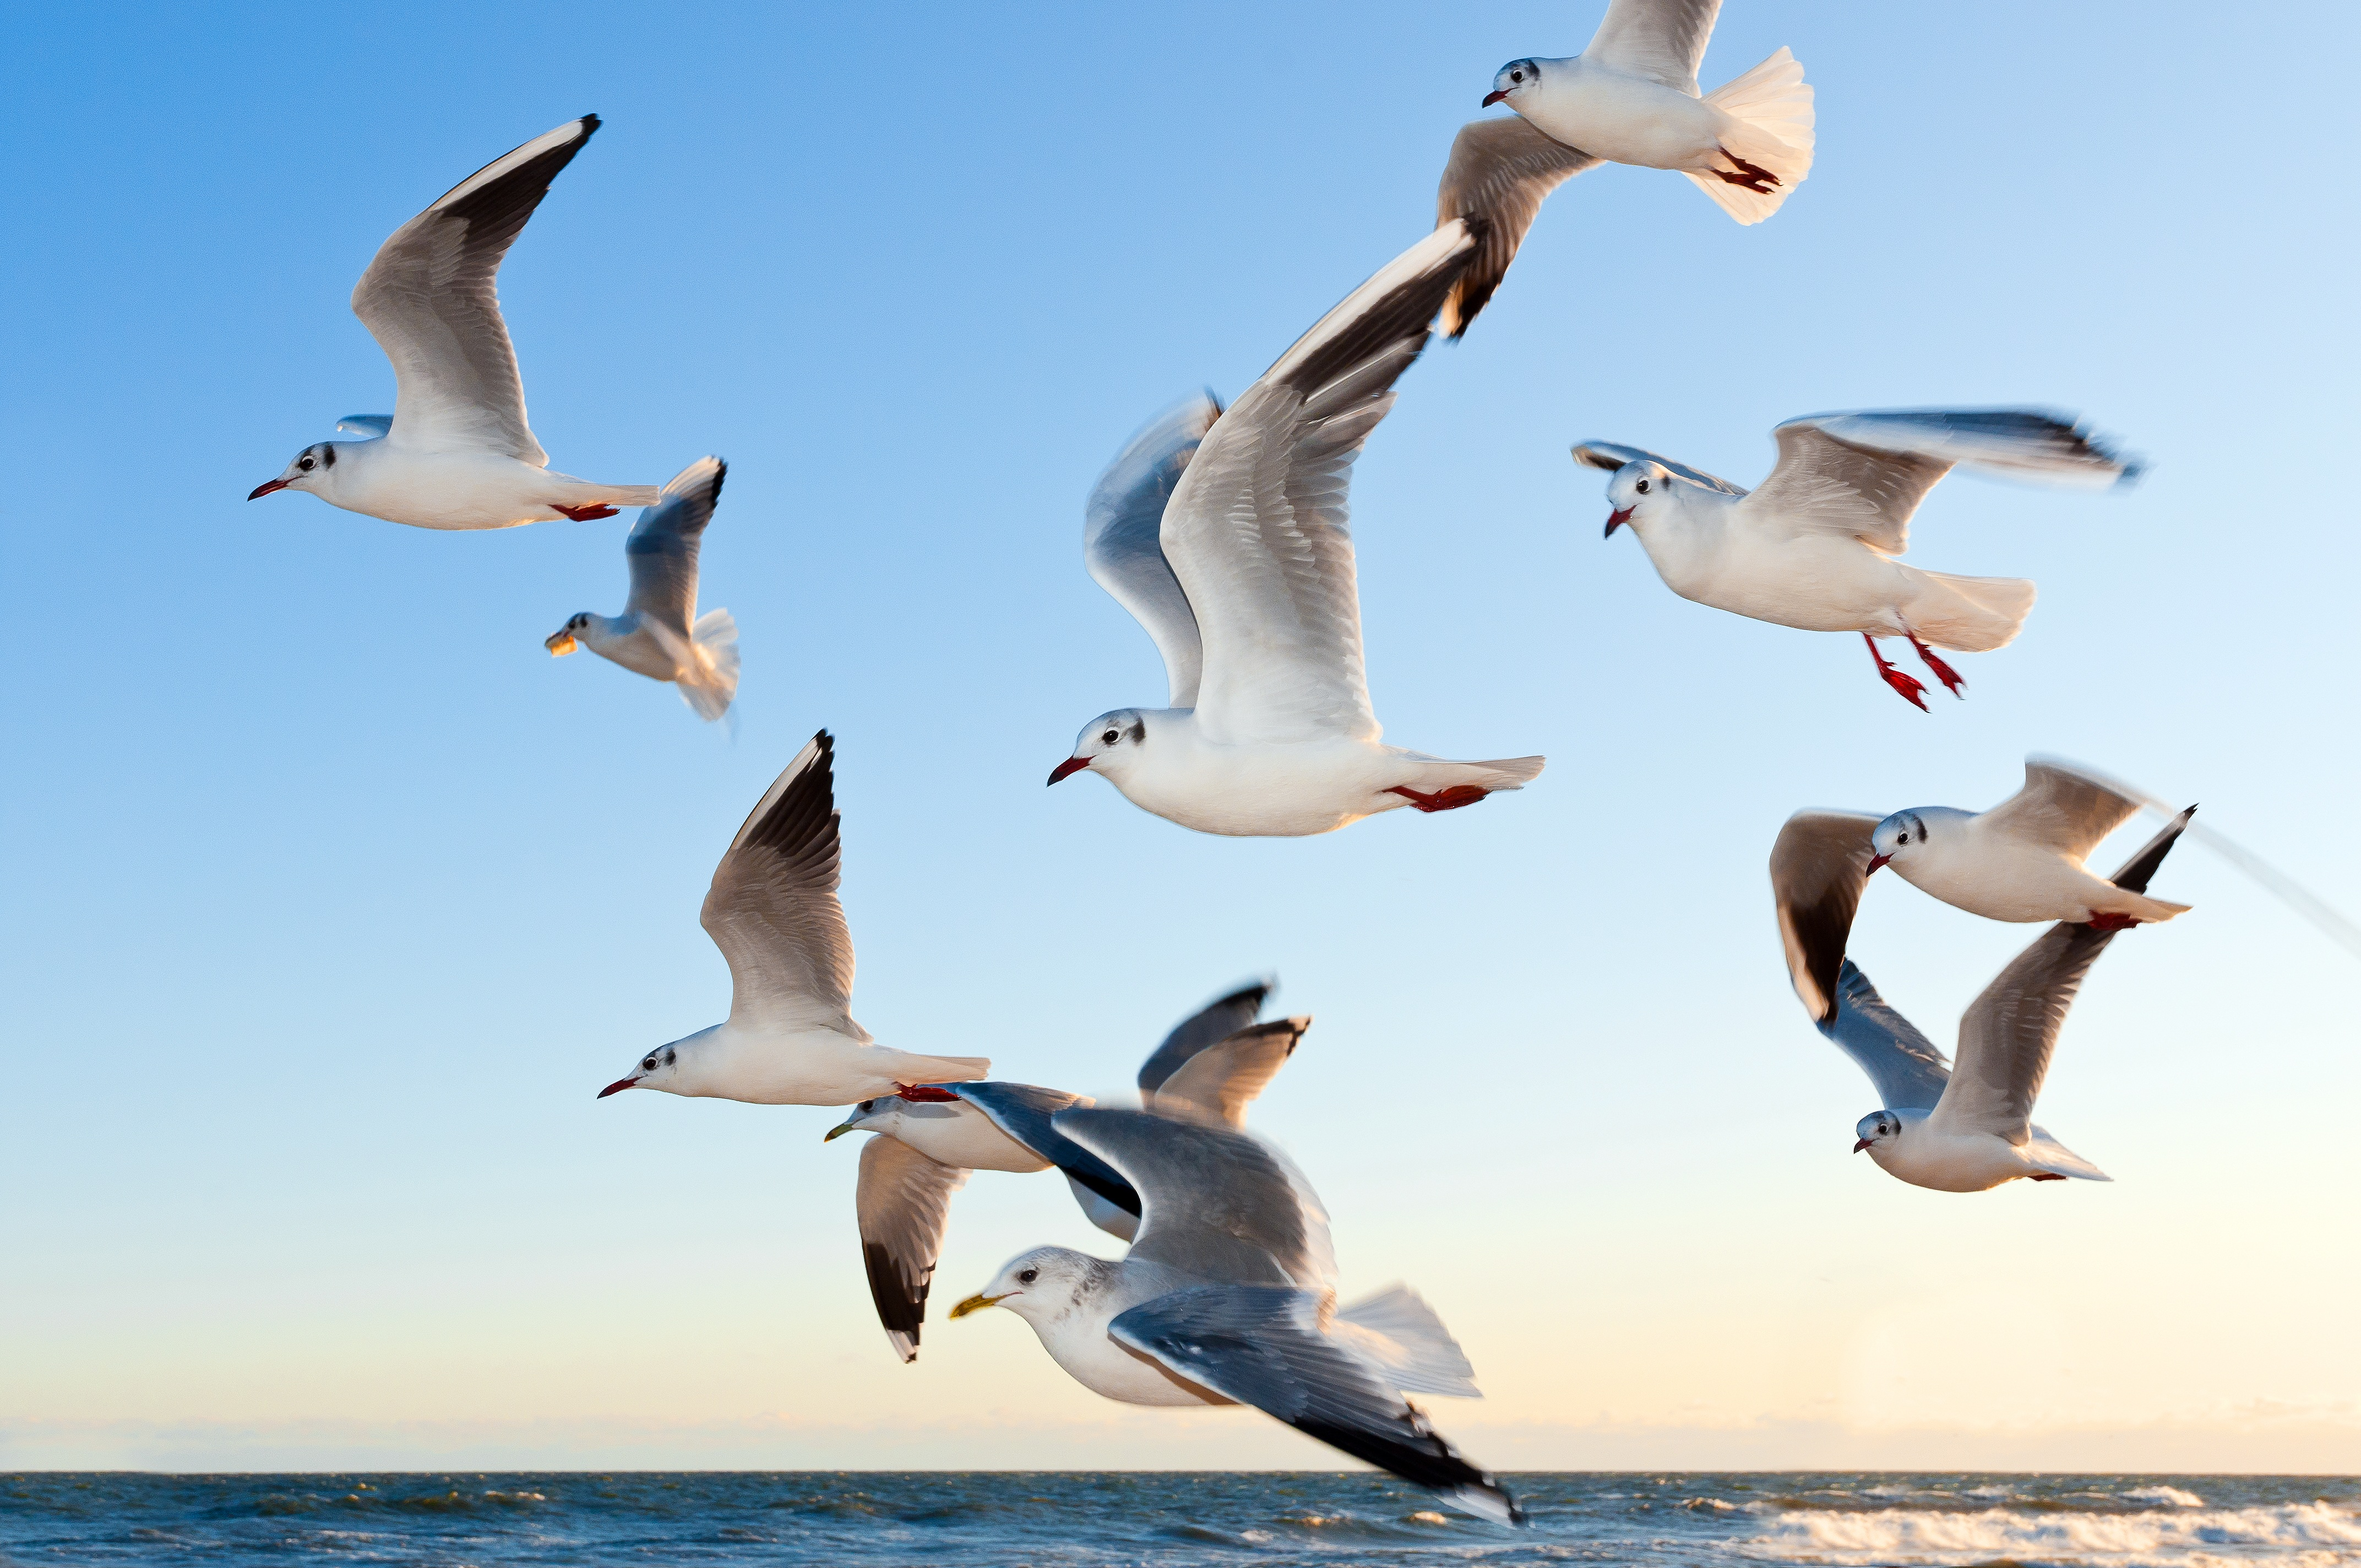 149309 download wallpaper Animals, Flight, Sea, Birds, Seagulls screensavers and pictures for free